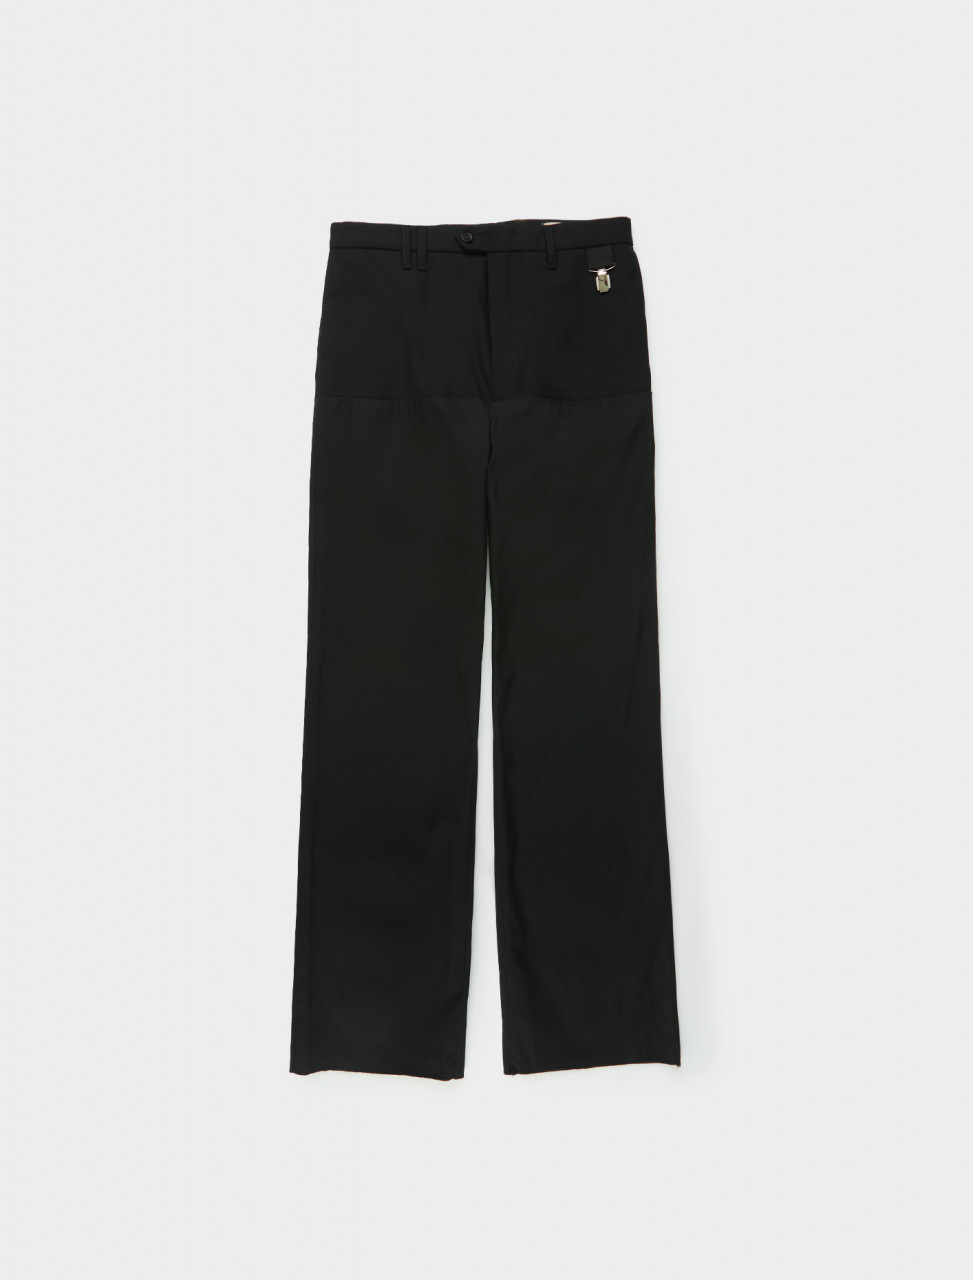 Raf Simons Straight Fit Pants with Horizontal Cut Front